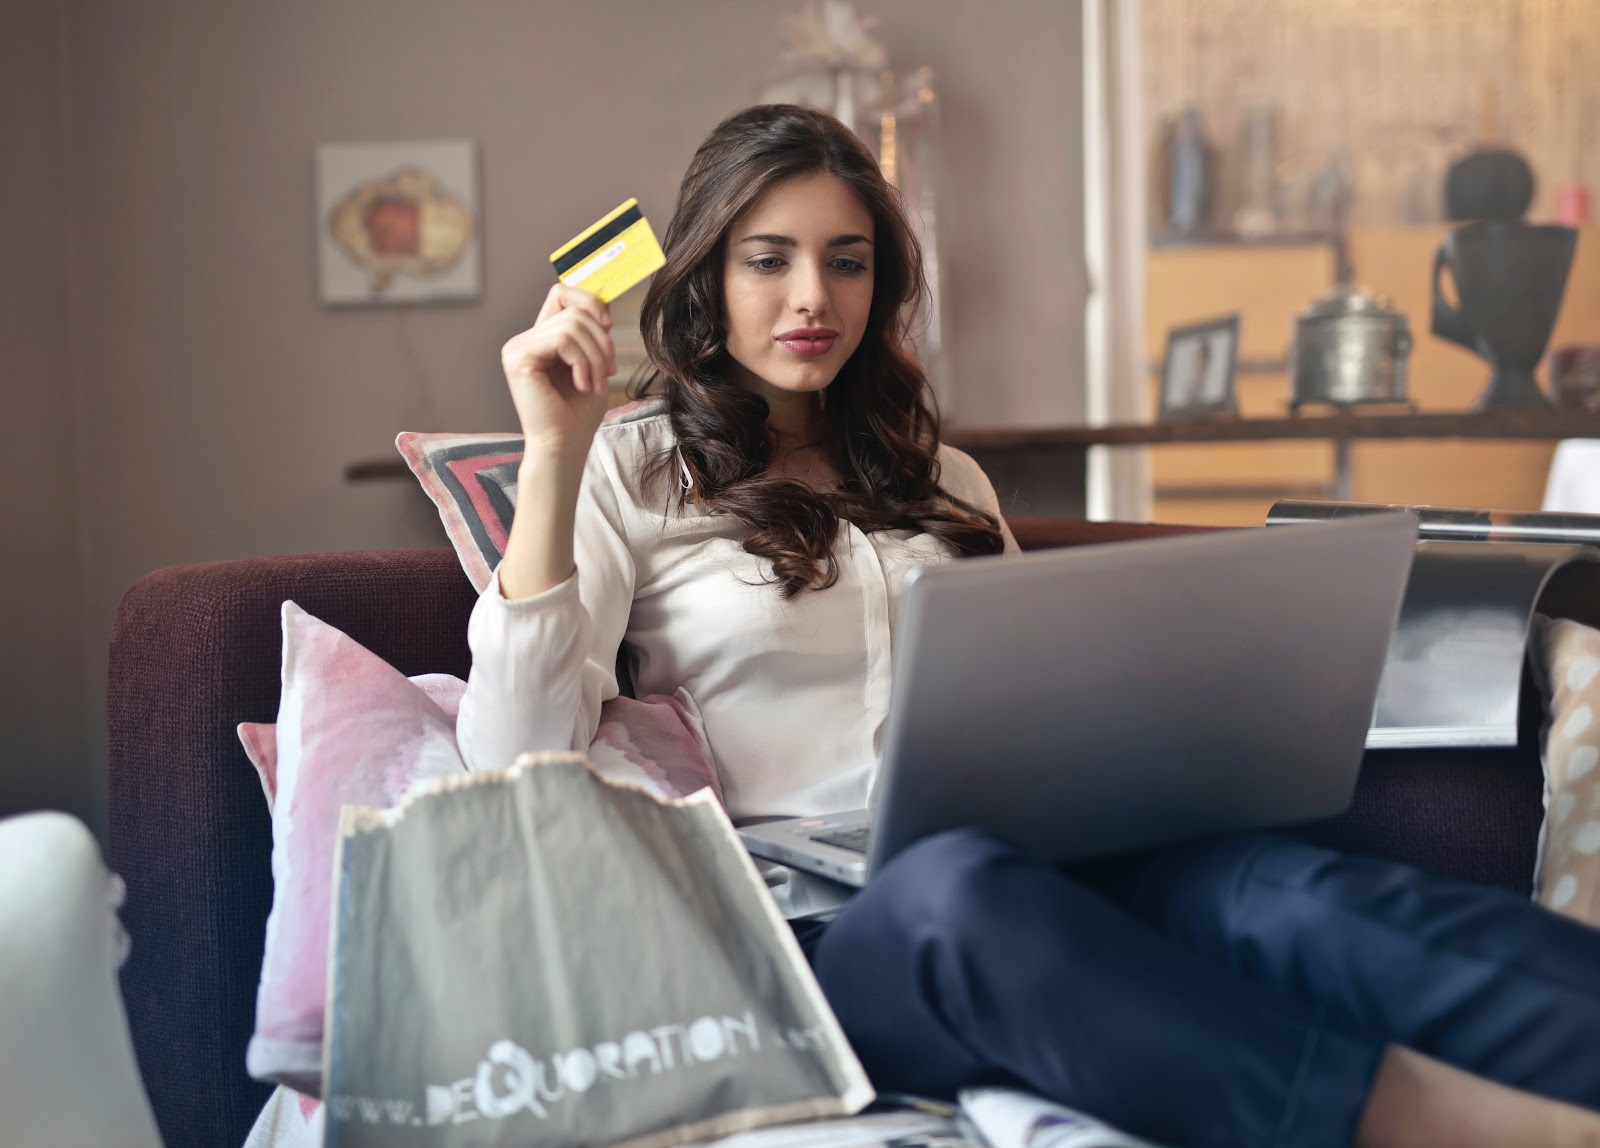 Woman holding credit card while using laptop